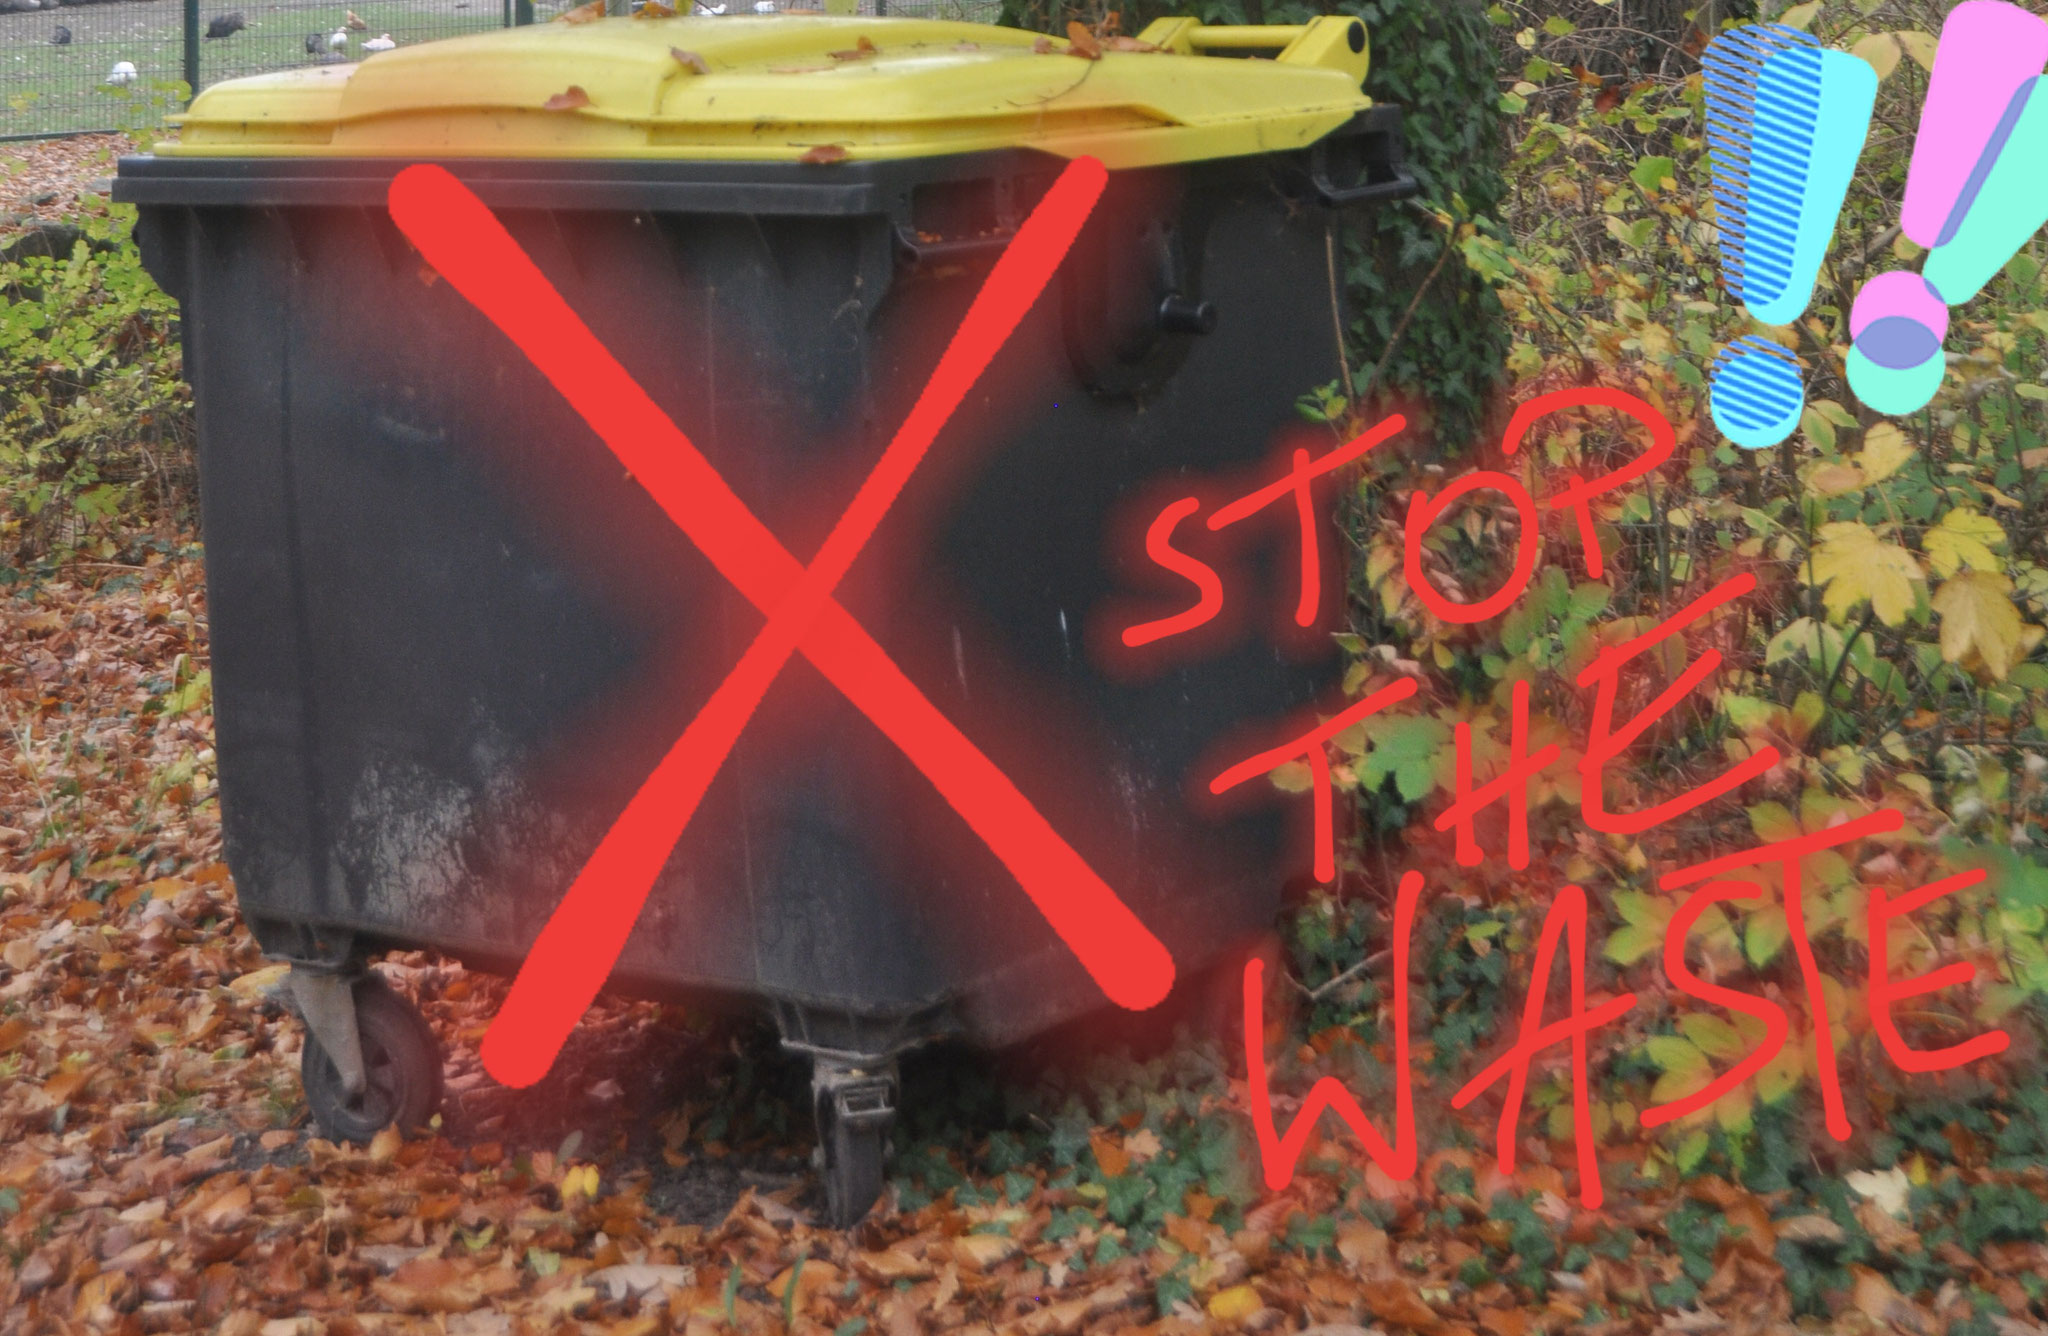 Stop The Waste And Use What You Have -  Esa